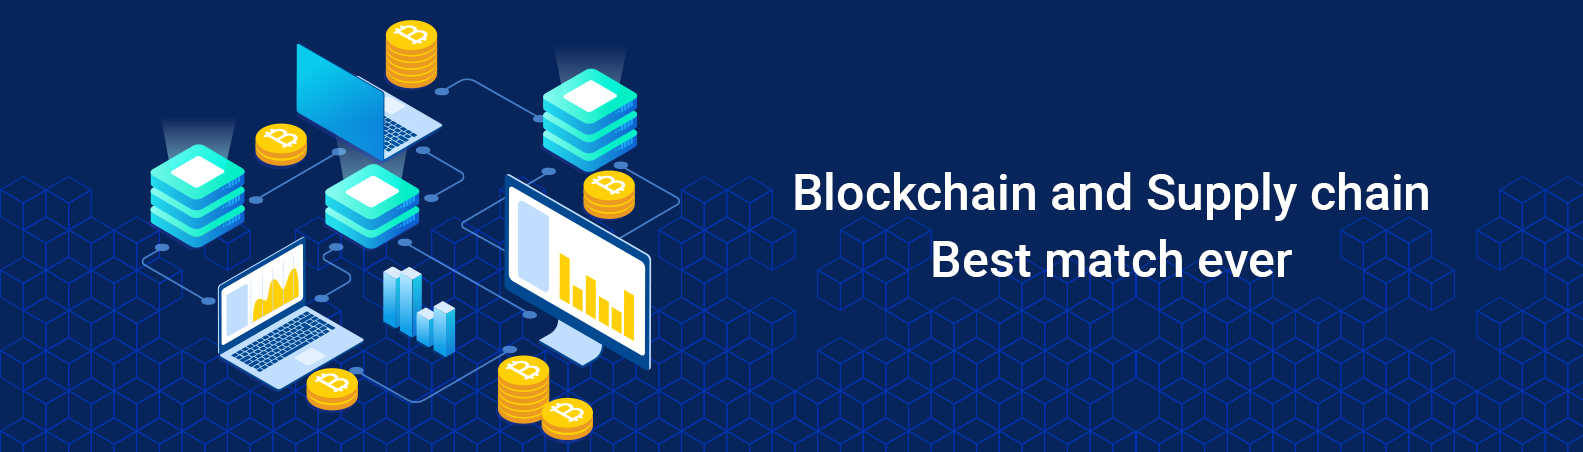 Blockchain and Supply Chain – Best Match Ever